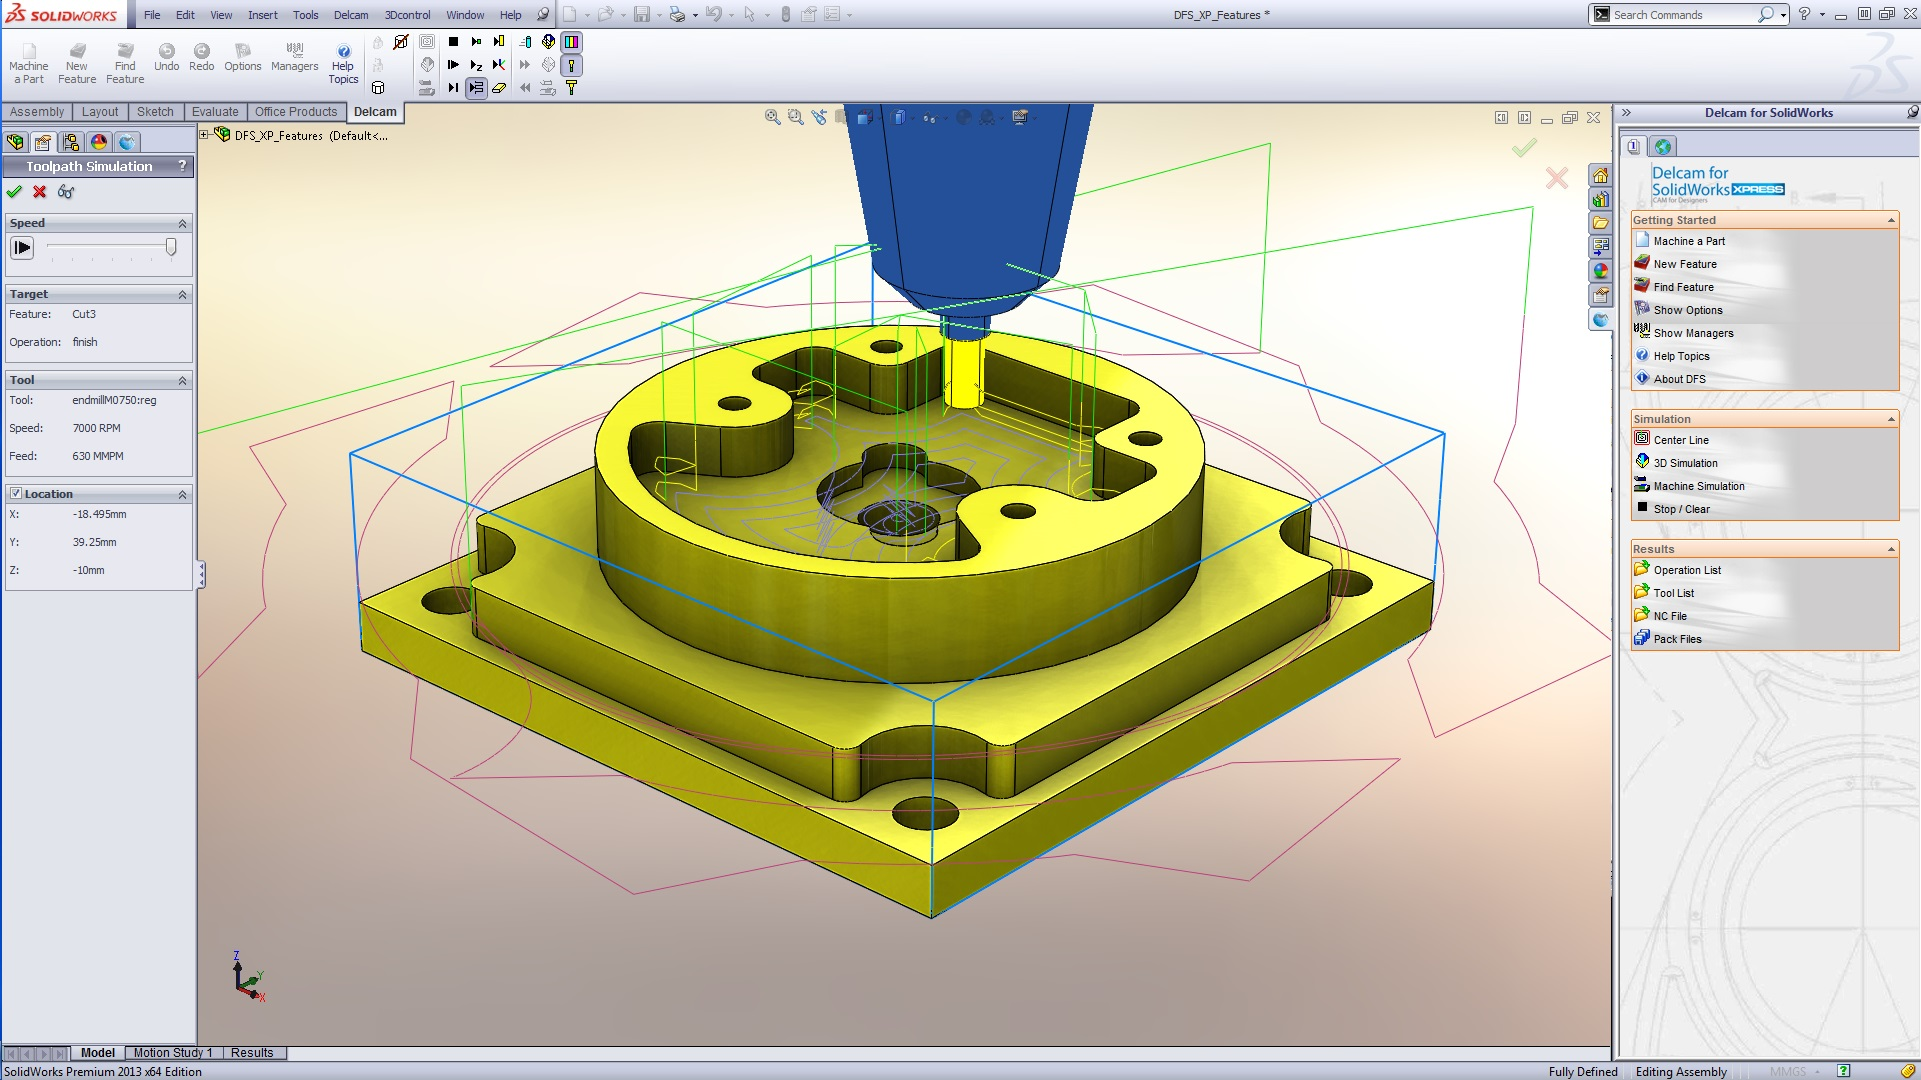 Delcam launches free CAM for SolidWorks